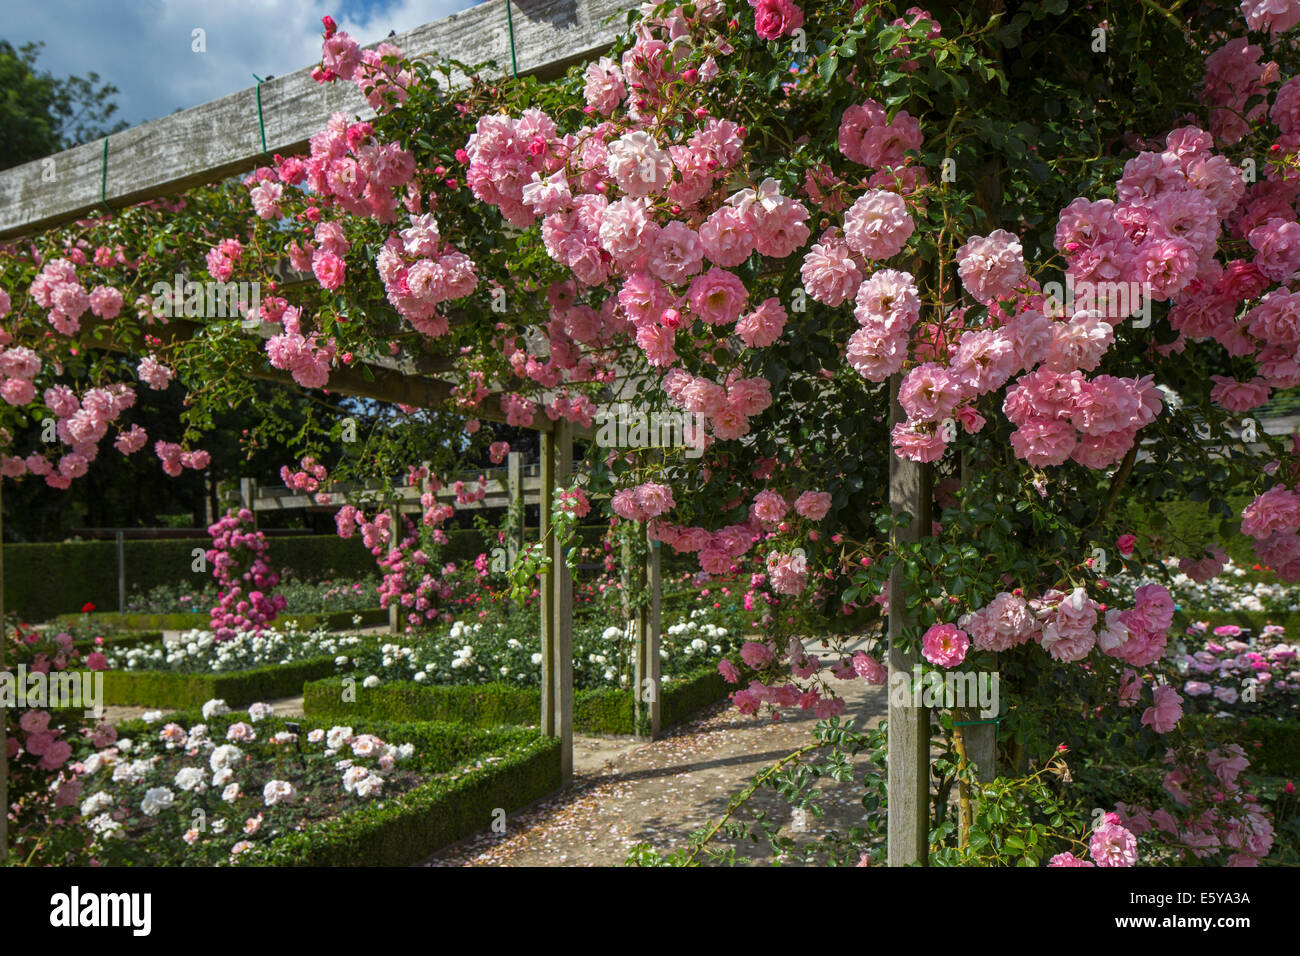 Pink roses flowering in the Coloma Rose Garden at Sint-Pieters-Leeuw, Flemish Brabant, Flanders, Belgium - Stock Image